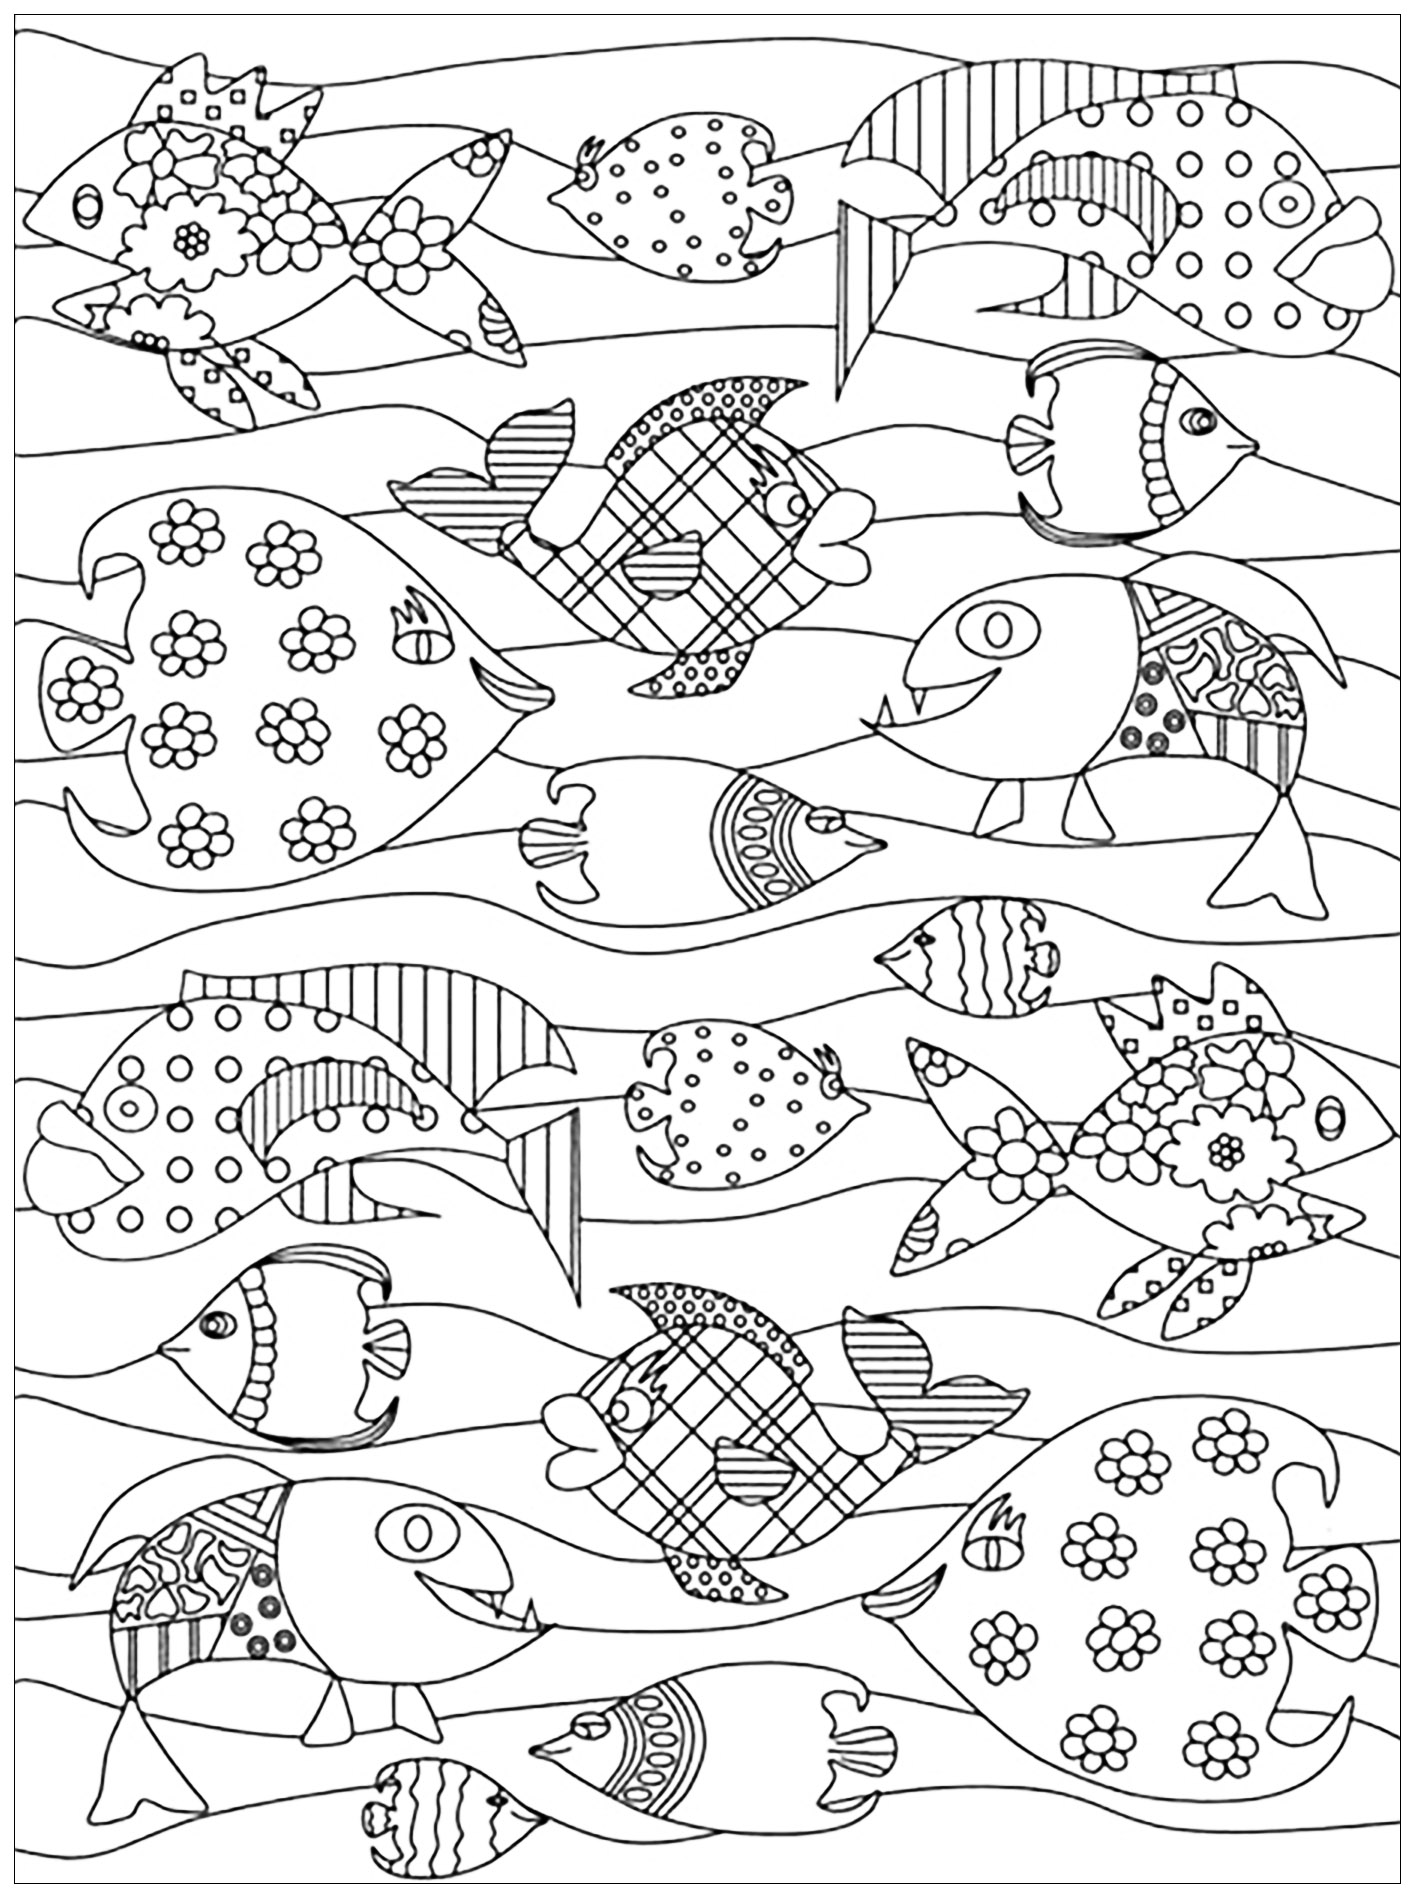 Happy Fishes to print & color